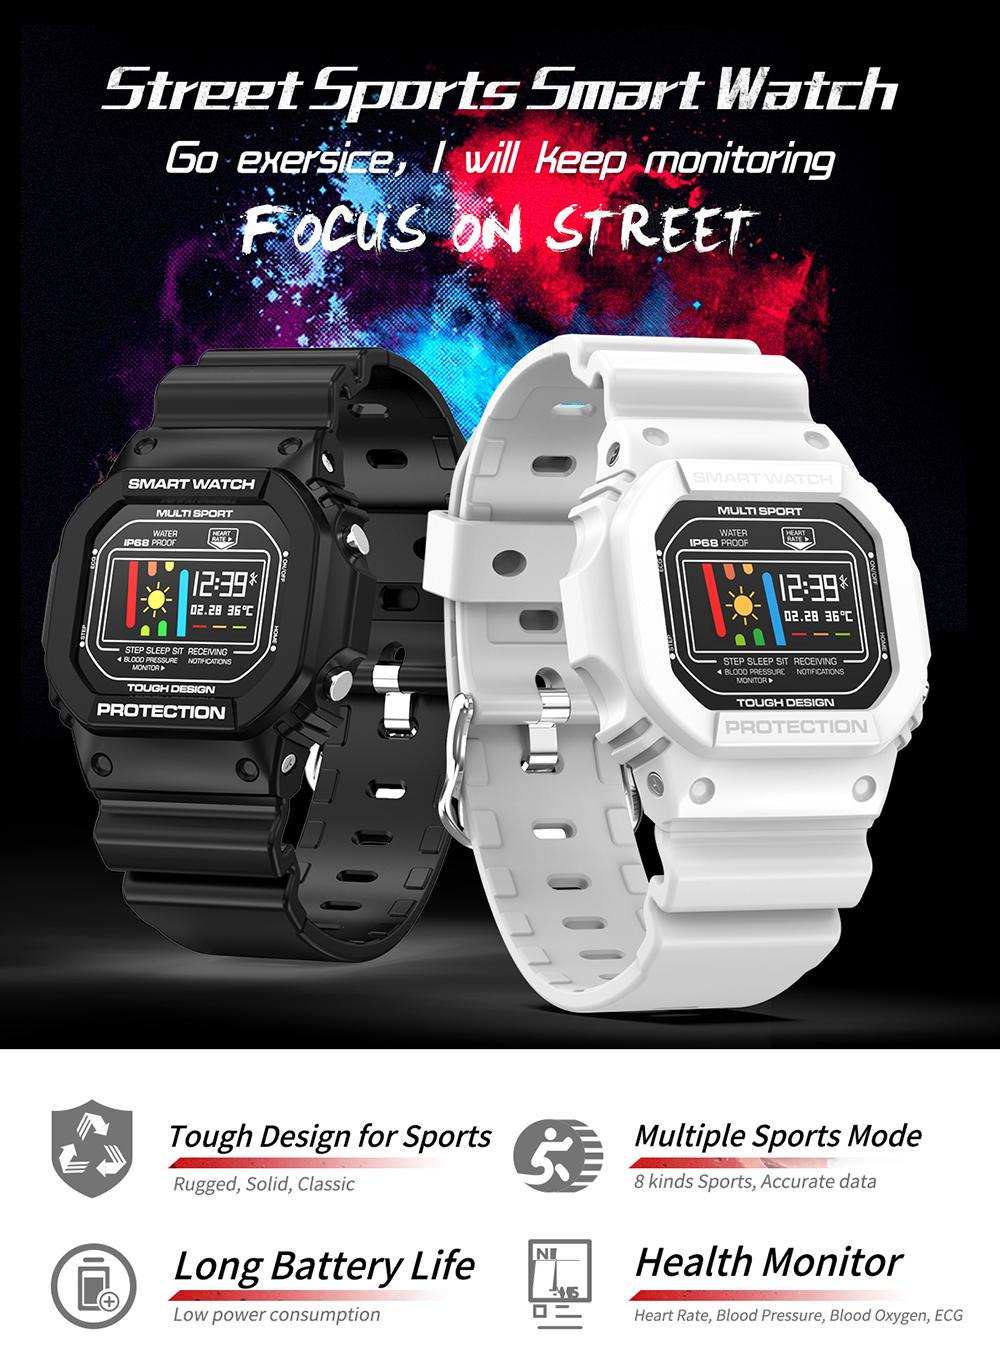 Microwear X12 Smartwatch A trendy hip retro, cool, fashionable, popular with the millennial youth Shock 3 resistance X12 waterproof watches watch trackers tracker sports sport smartwatches smart rate pressure PPG pedometers pedometer Monitors Monitor Ip68 heartrate heart rate Heart health gym fitness tracker ECG bracelets bracelet